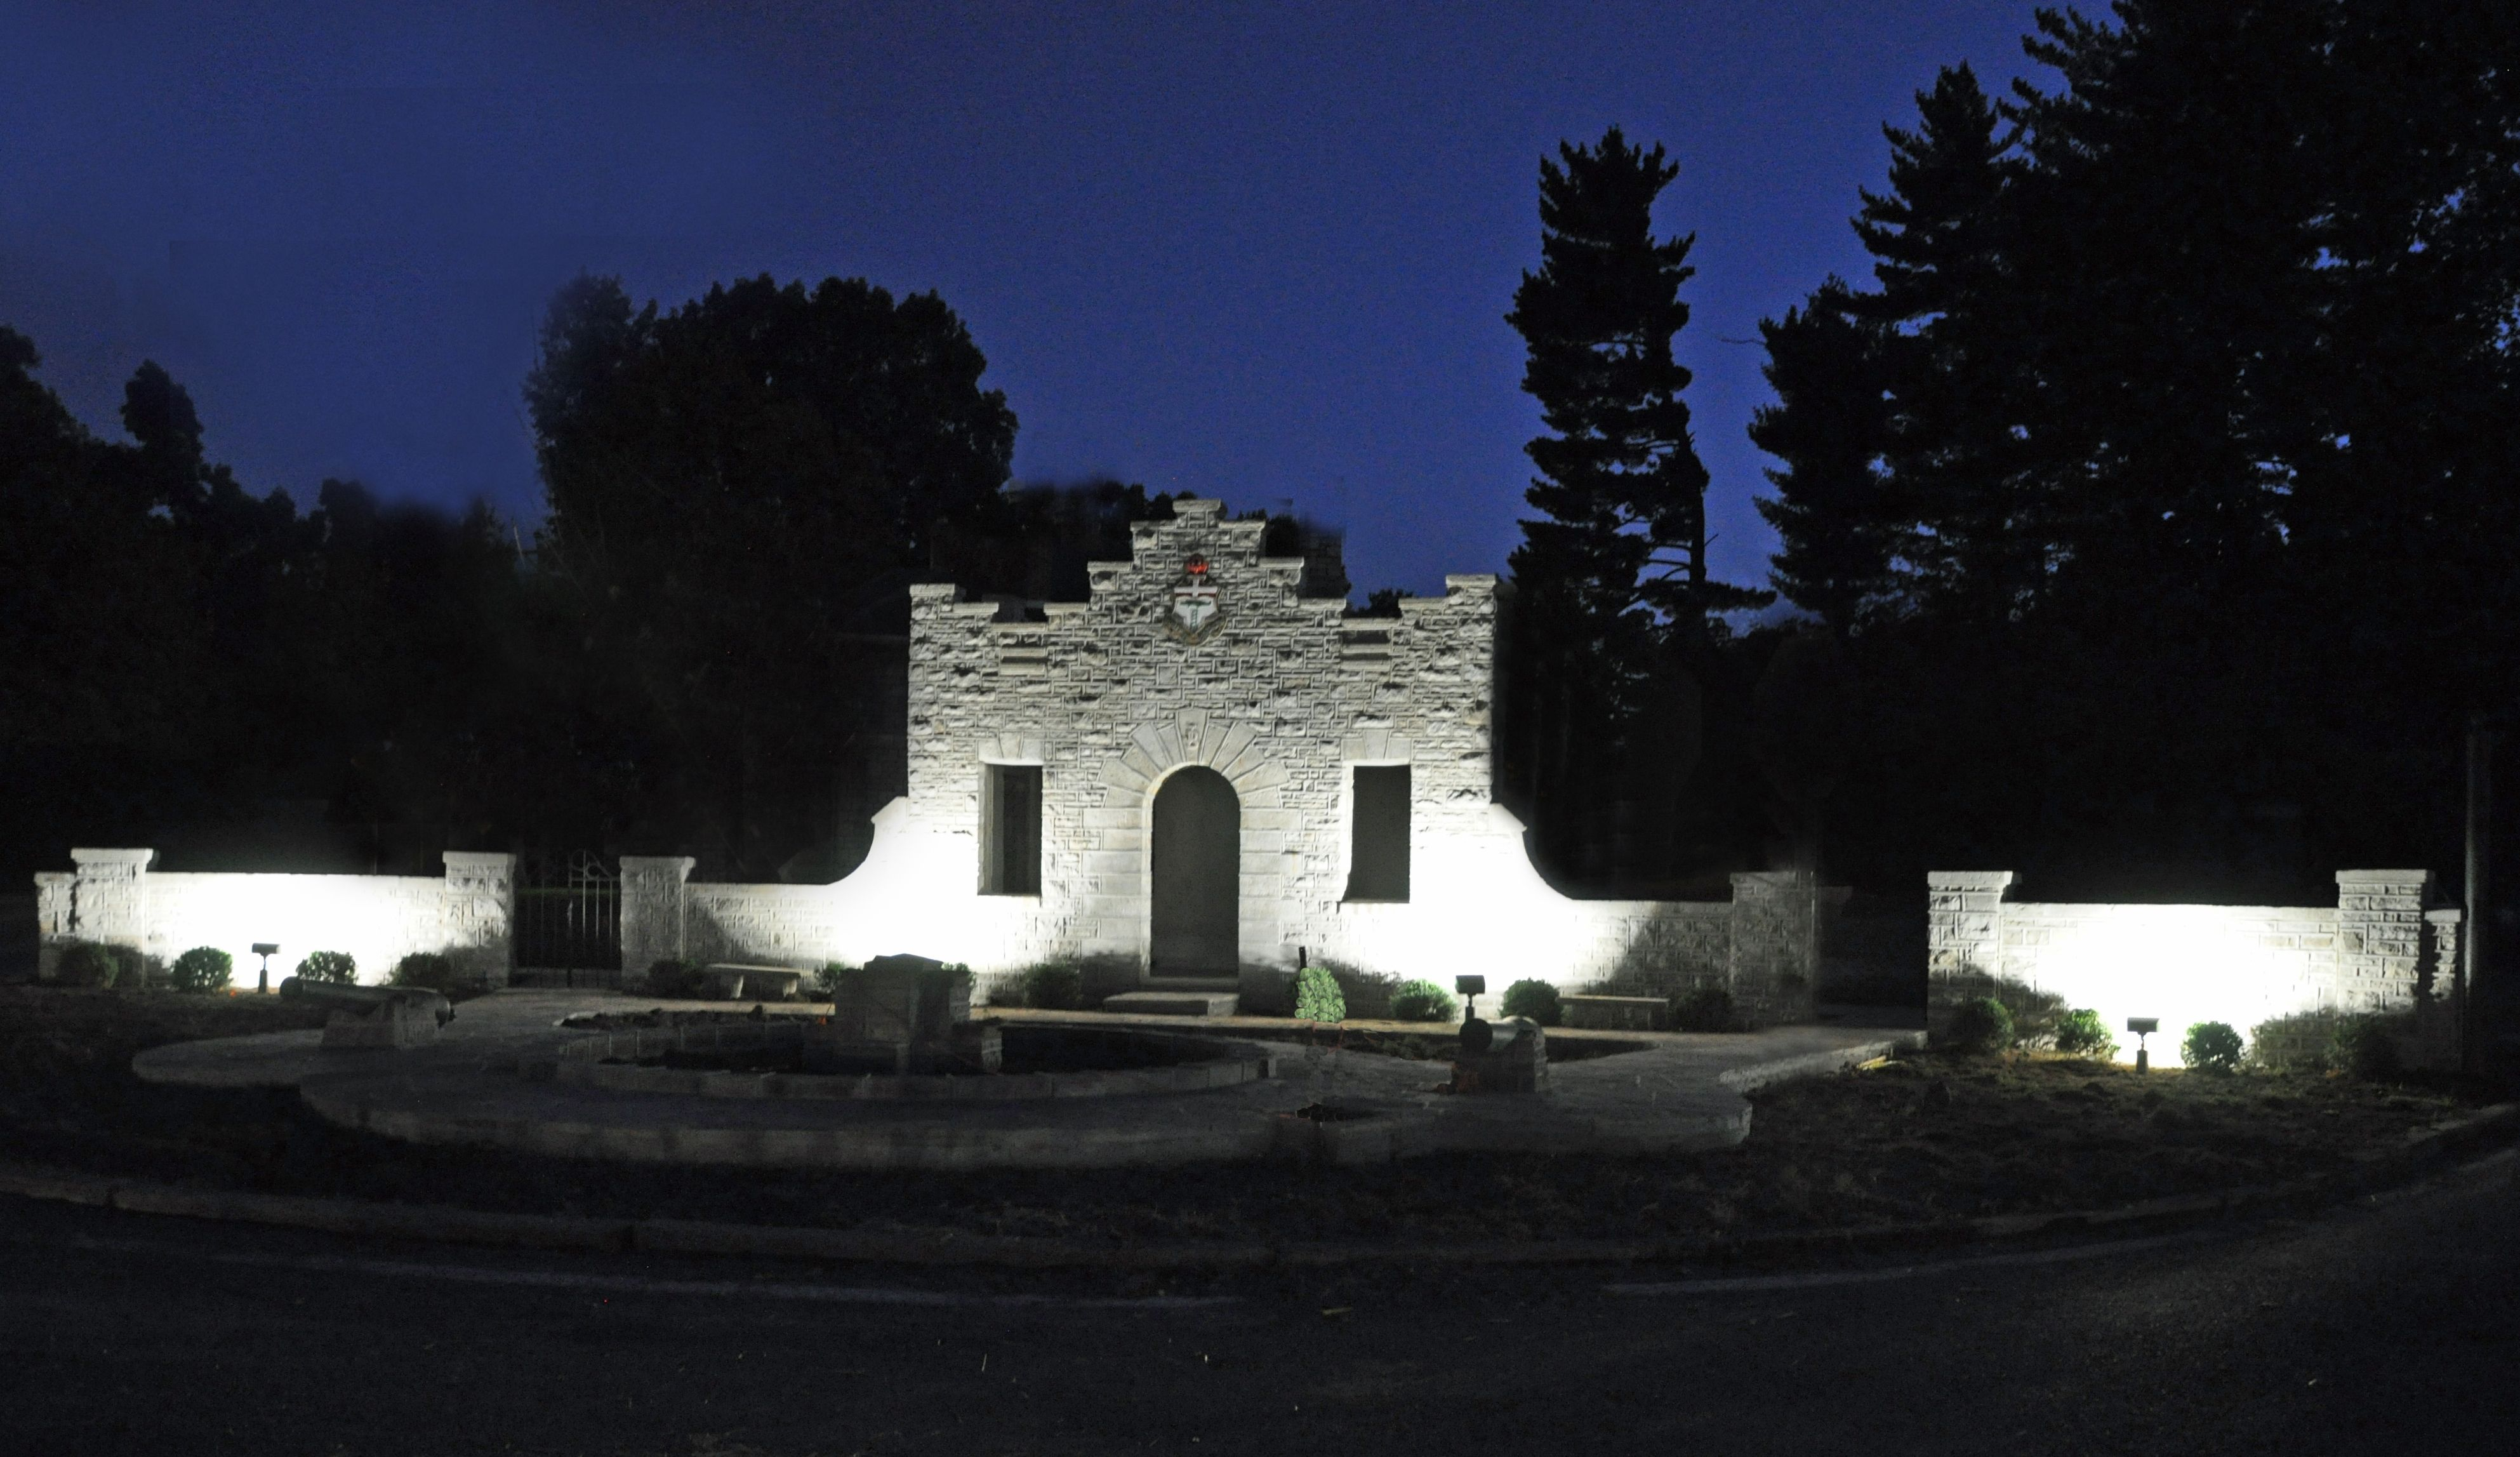 Night photo of the north gate of the barracks built in the